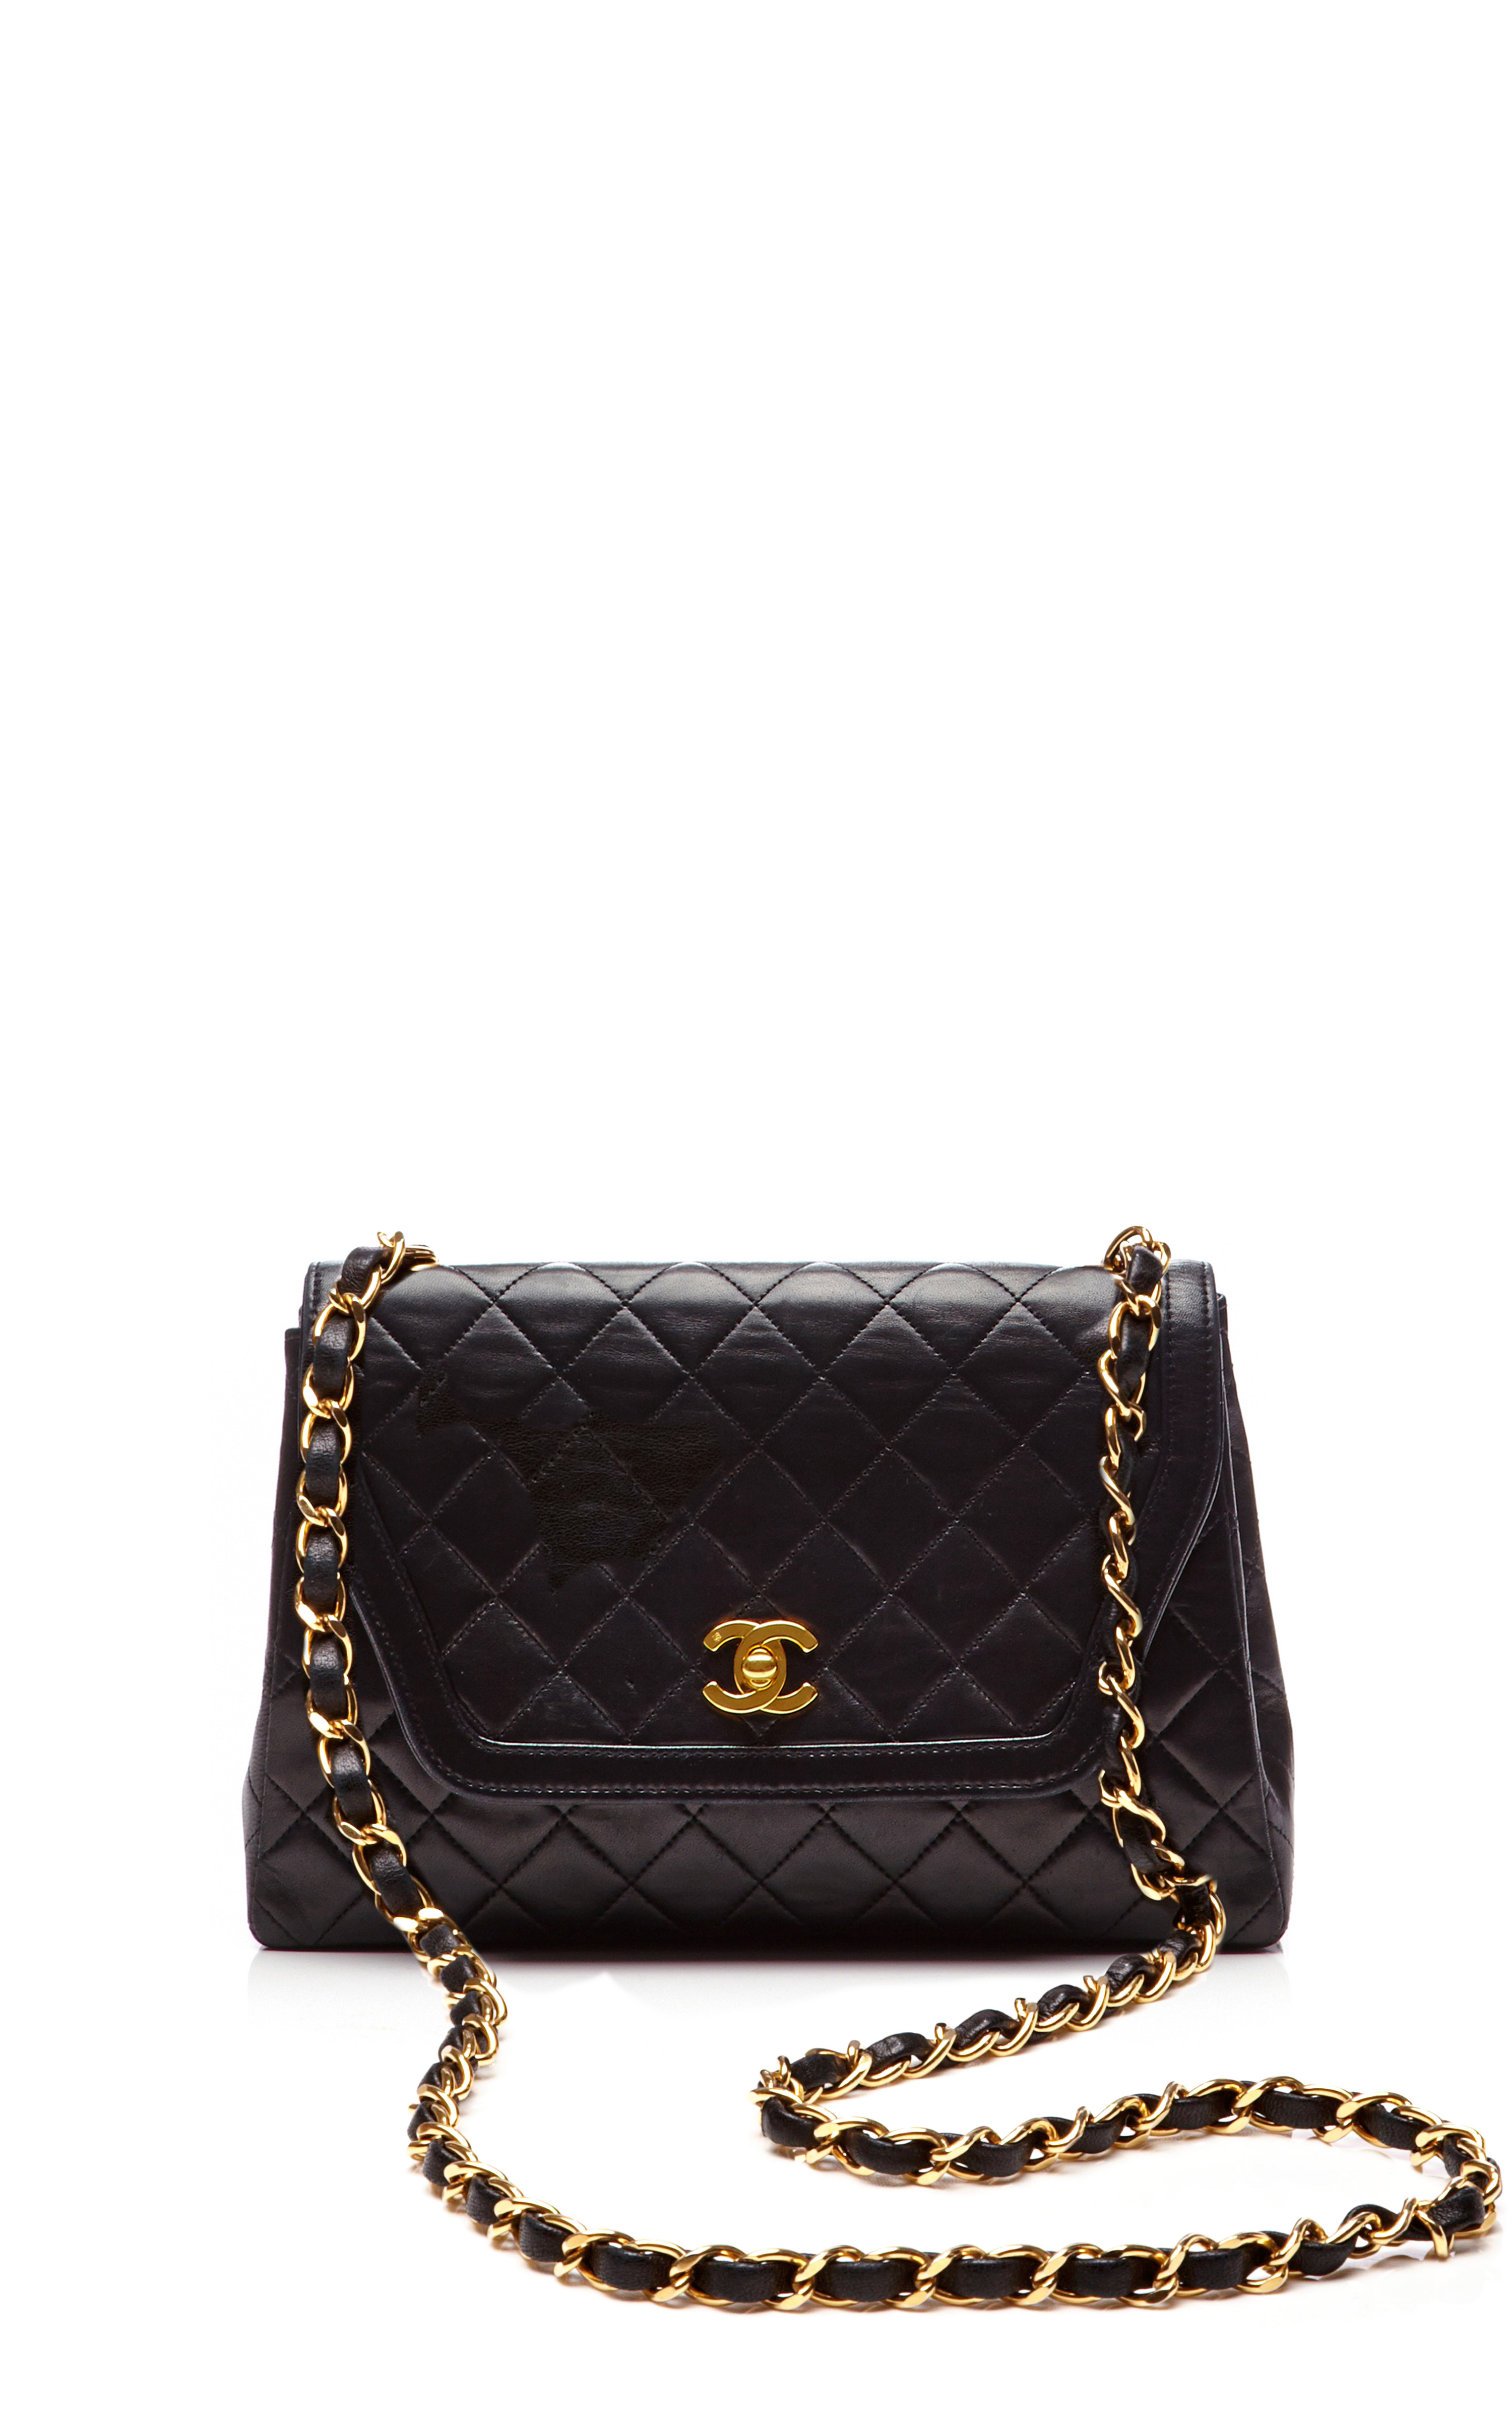 Chanel Chanel Black Quilted Lambskin Trapezoid Bag From